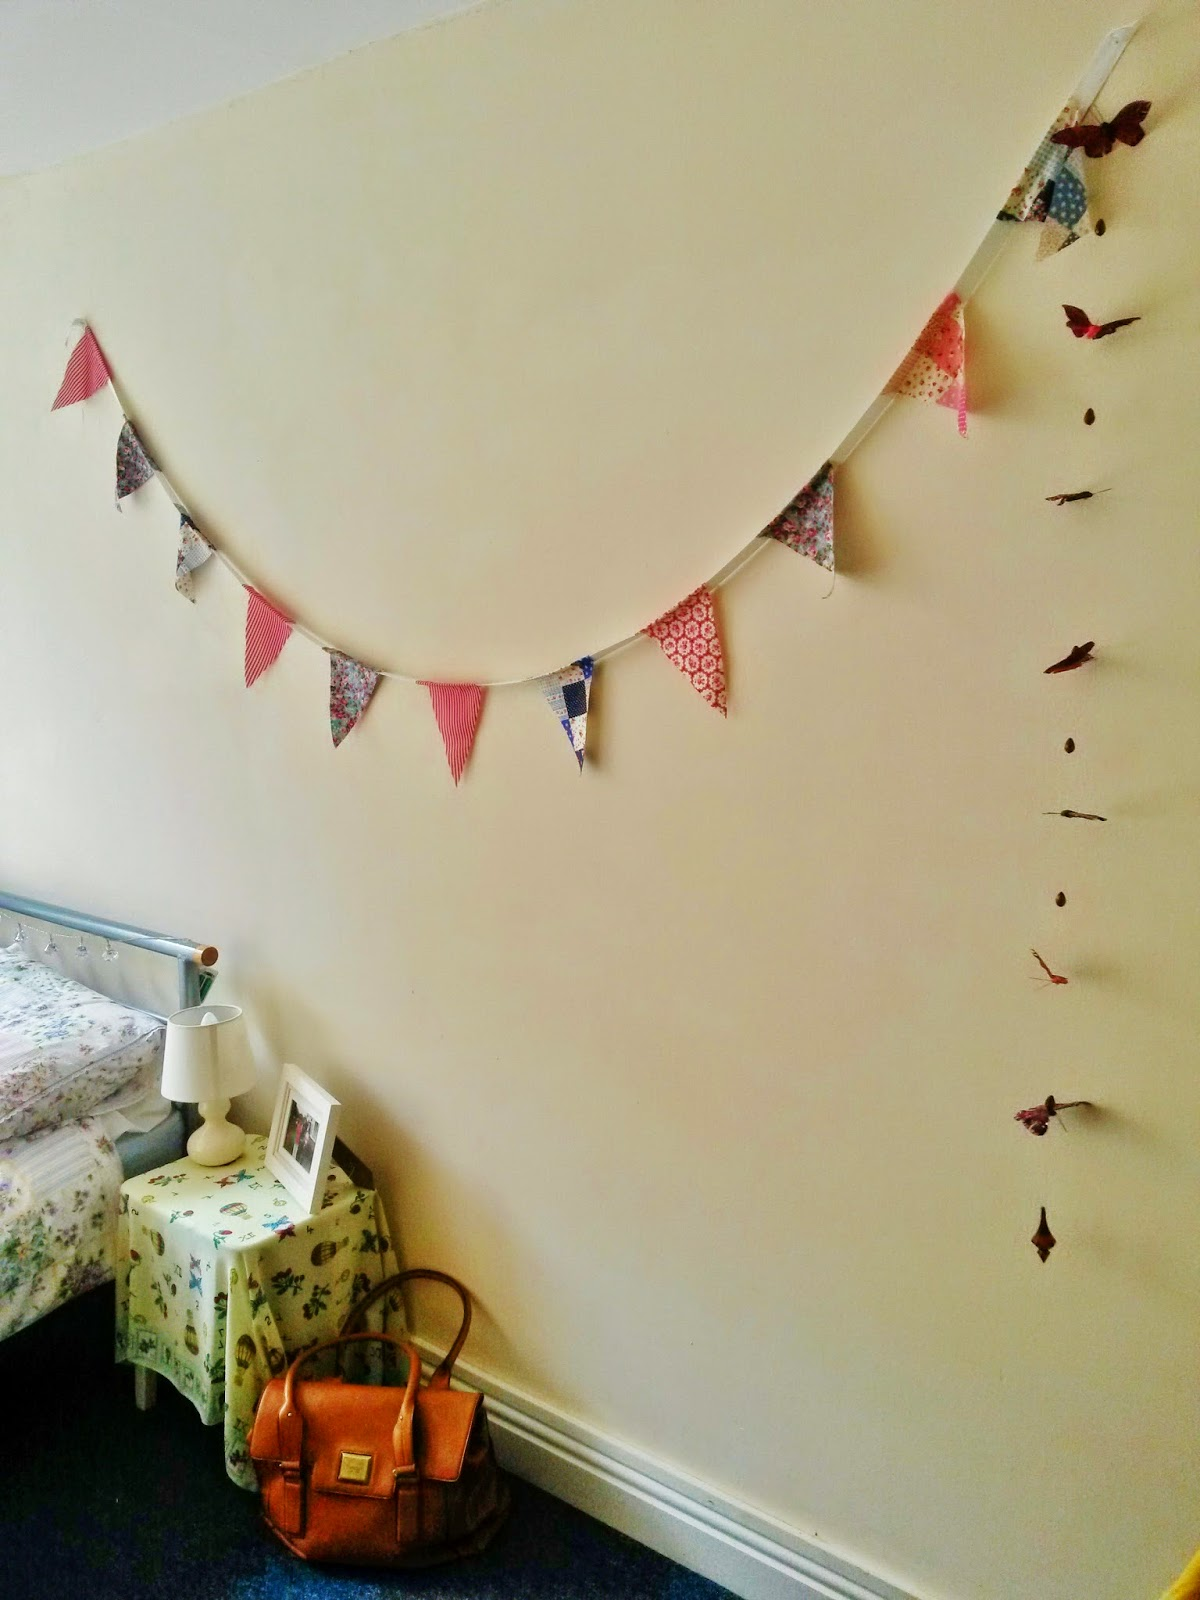 University Bedroom, homemade bunting